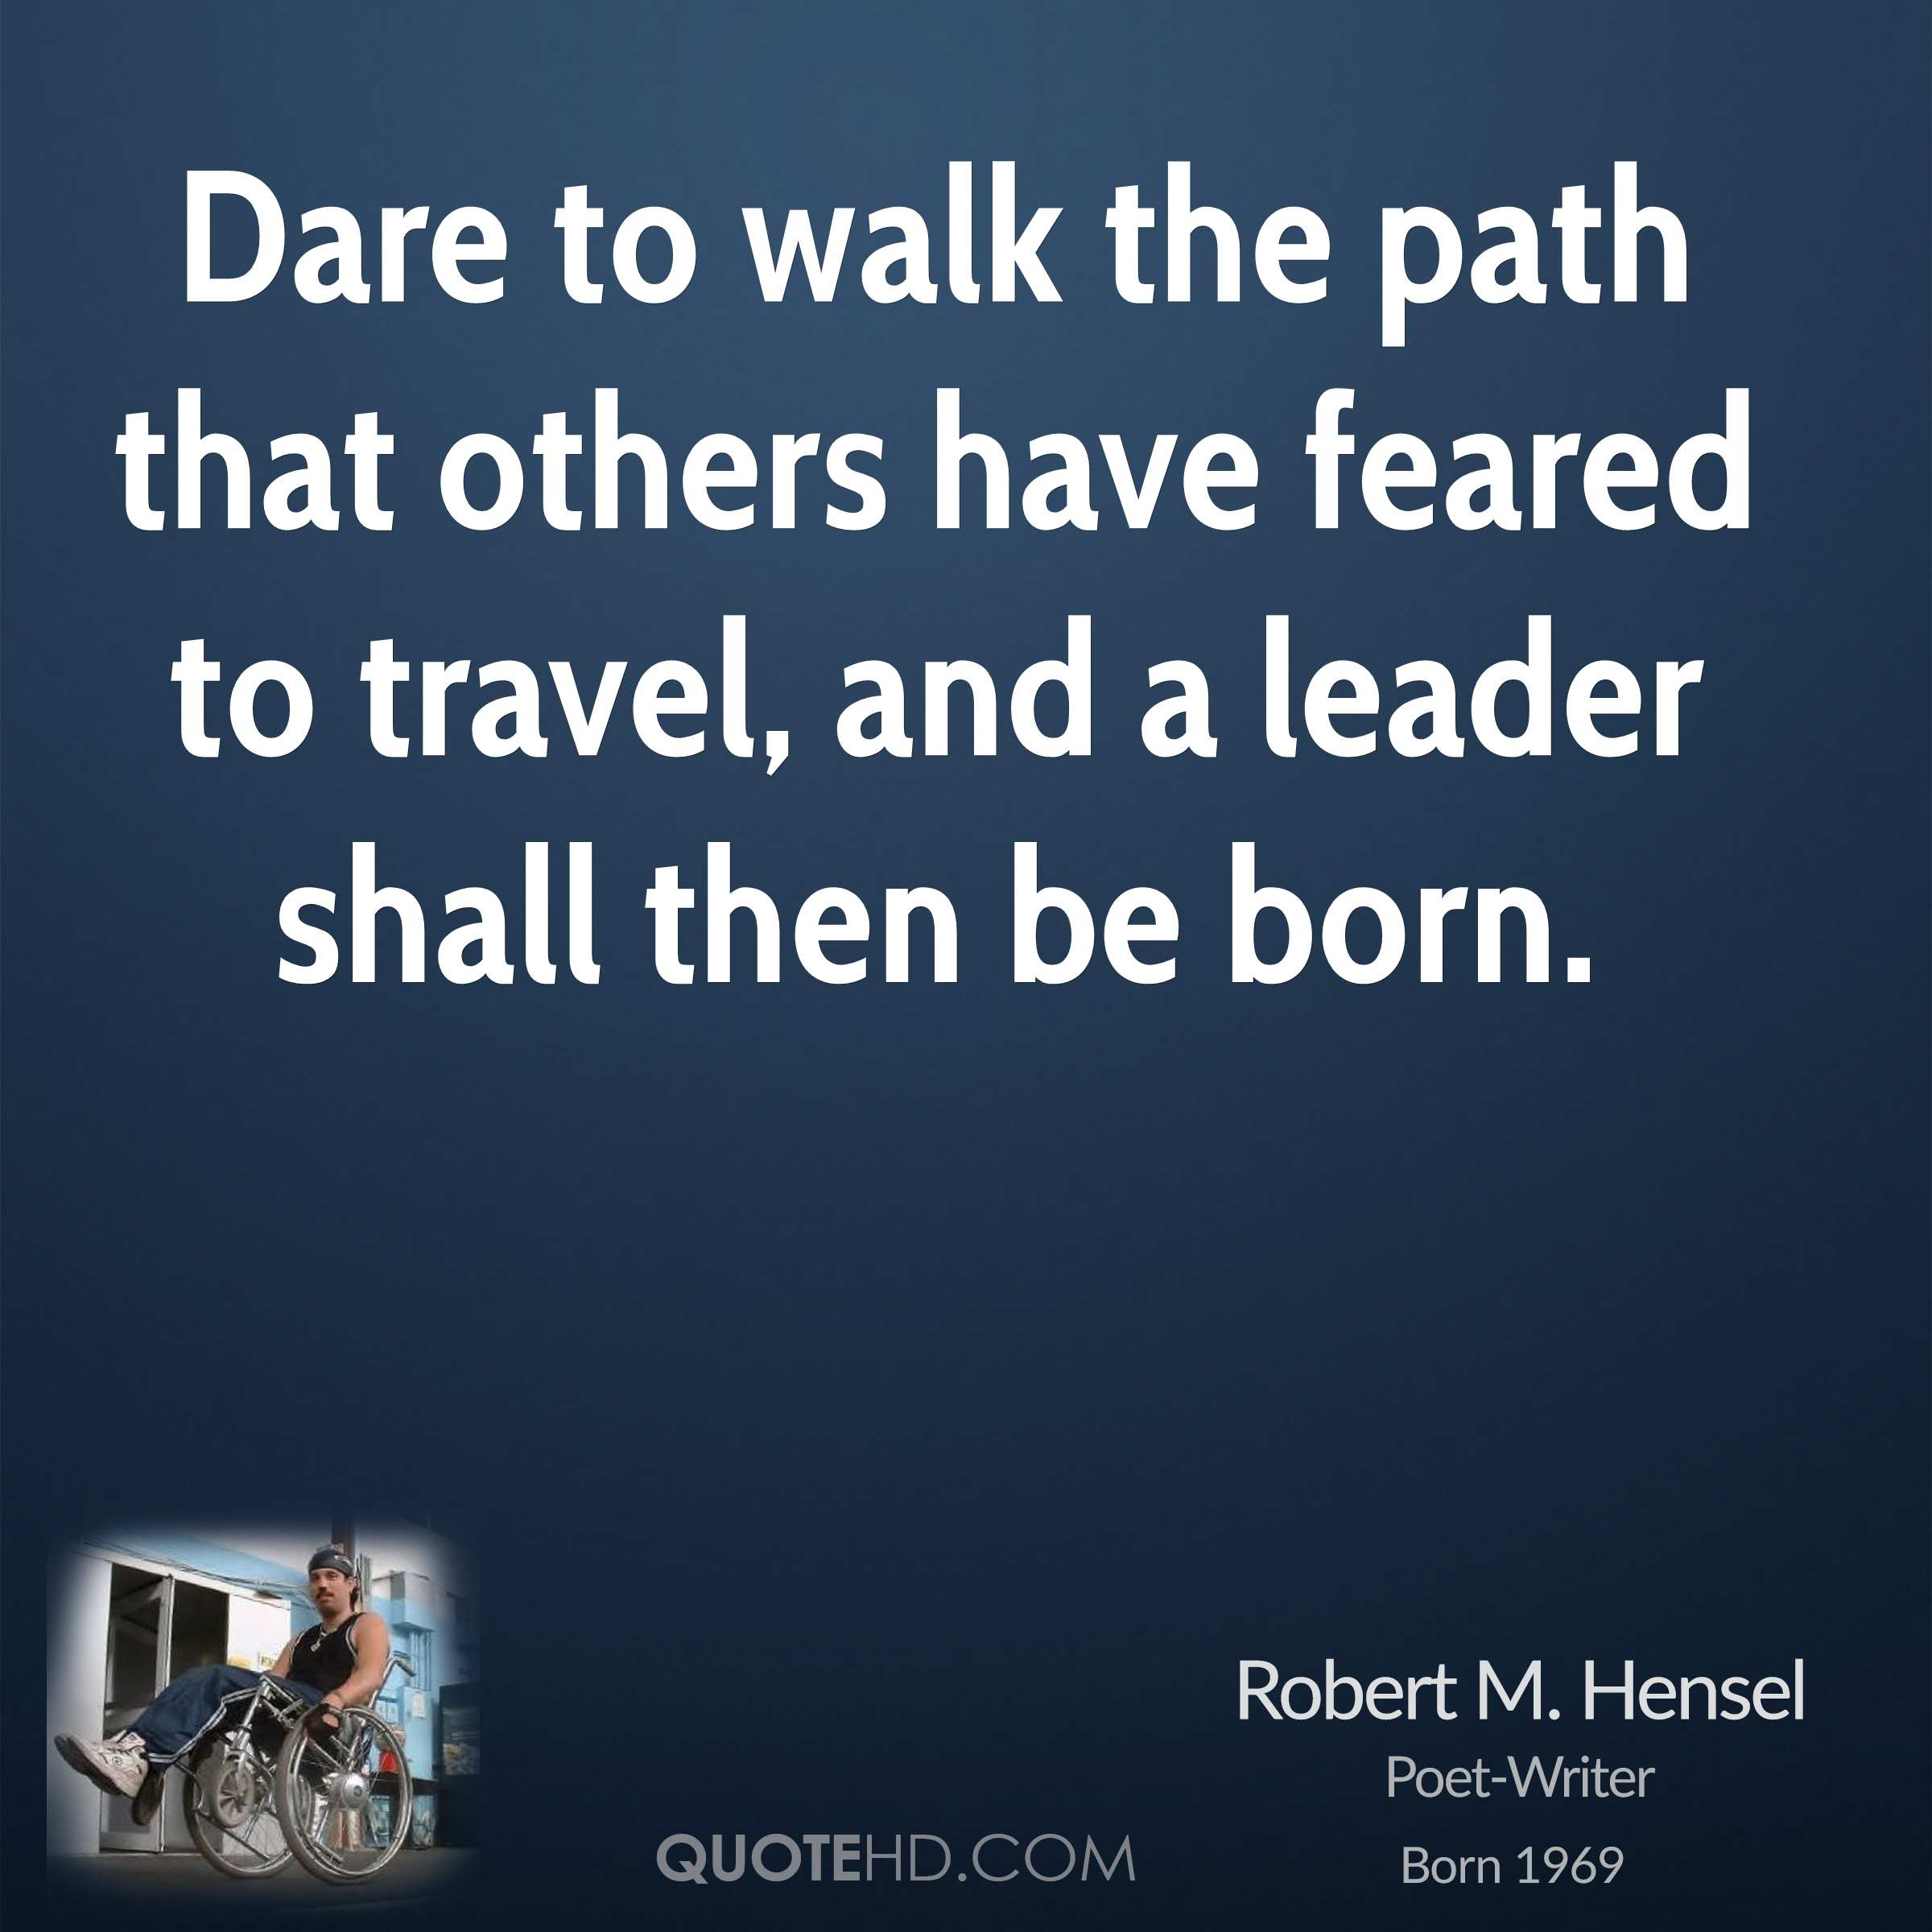 Dare Quotes: Robert M. Hensel Inspirational Quotes